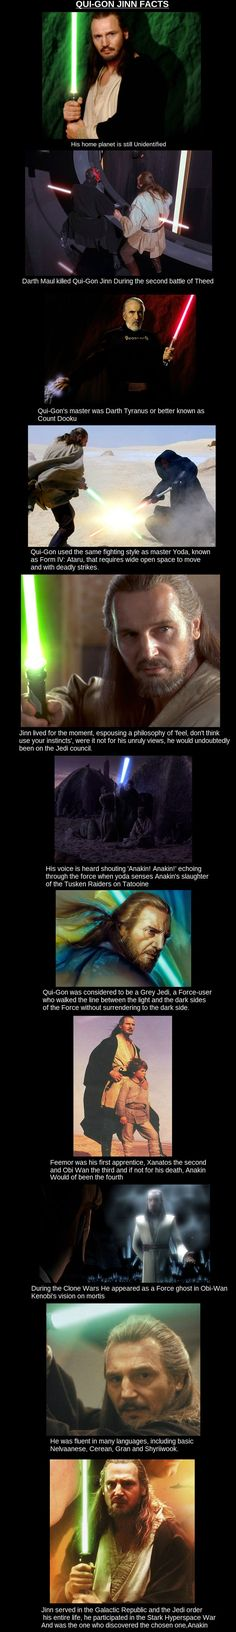 Qui-Gon Jinn, now these are some fact I really didn't know of him